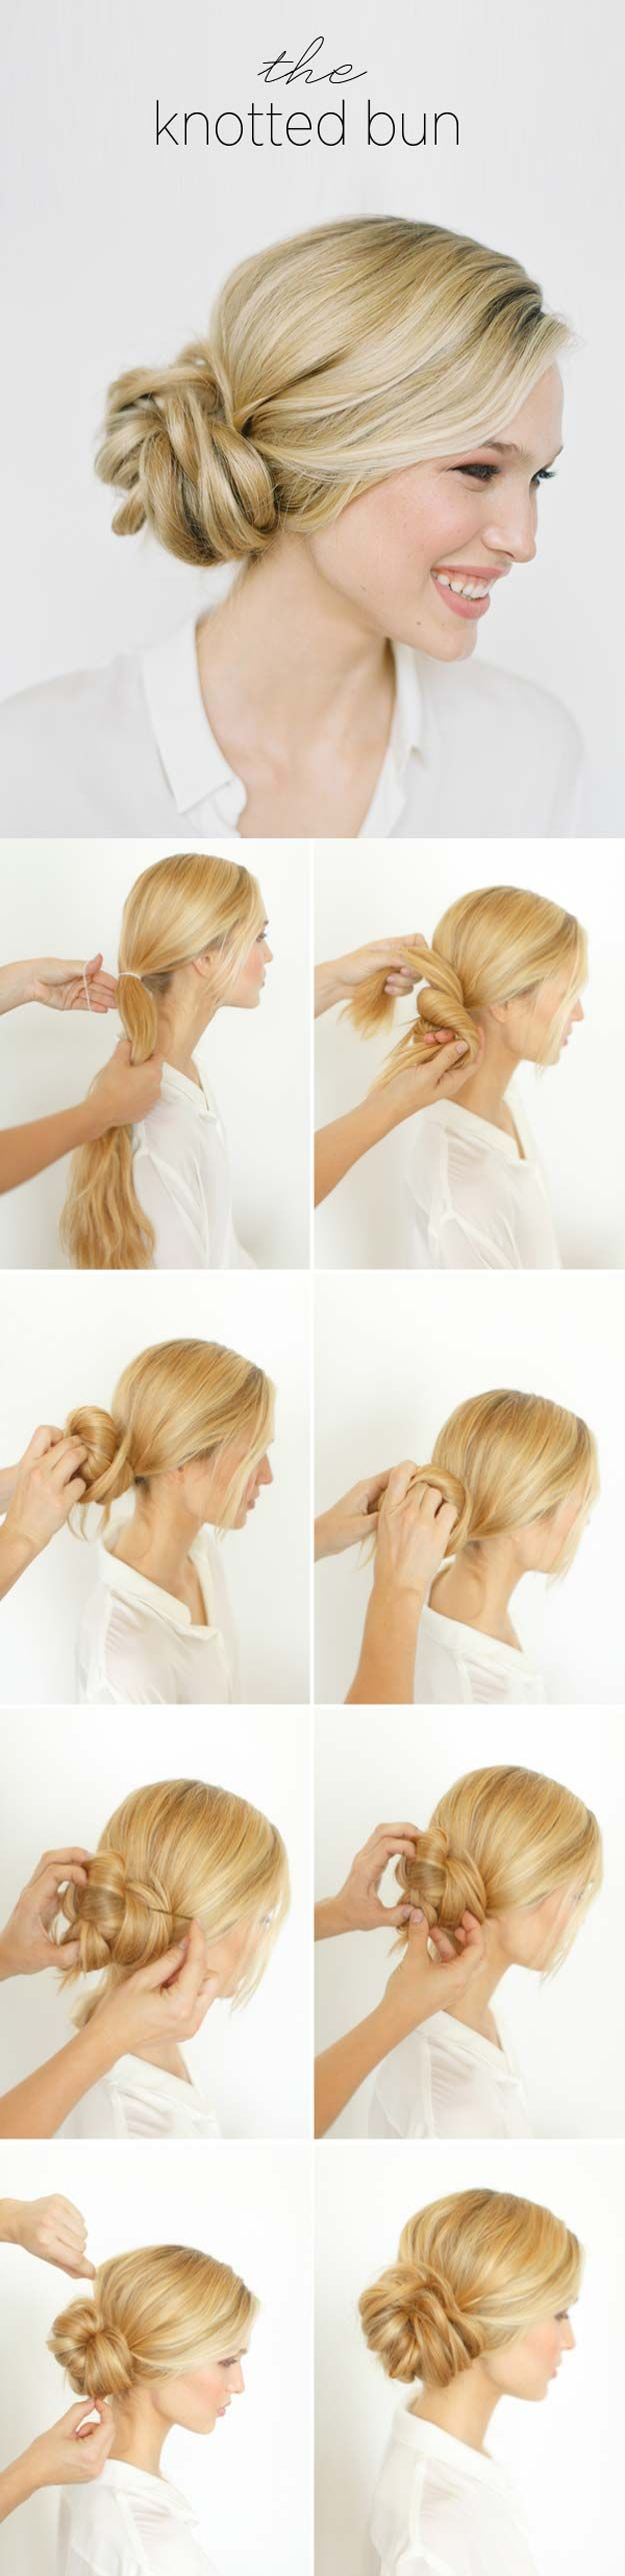 Best Hairstyles For Your 30s -DIY Knotted Bun- Hair Dos And Don'ts For Your 30s, With The Best Haircuts For Women Over 30, Including Short Hairstyle Ideas, Flattering Haircuts For Medium Length Hair, And Tips And Tricks For Taming Long Hair In Your 30s. Low Maintenance Hair Styles And Looks For A 30 Year Old Woman. Simple Step By Step Tutorials And Tips For Hair Styles You Can Use To Look Younger And Feel Younger In Your 30s. Hair styles For Curly Hair And Straight Hair Can Be Easy If You…